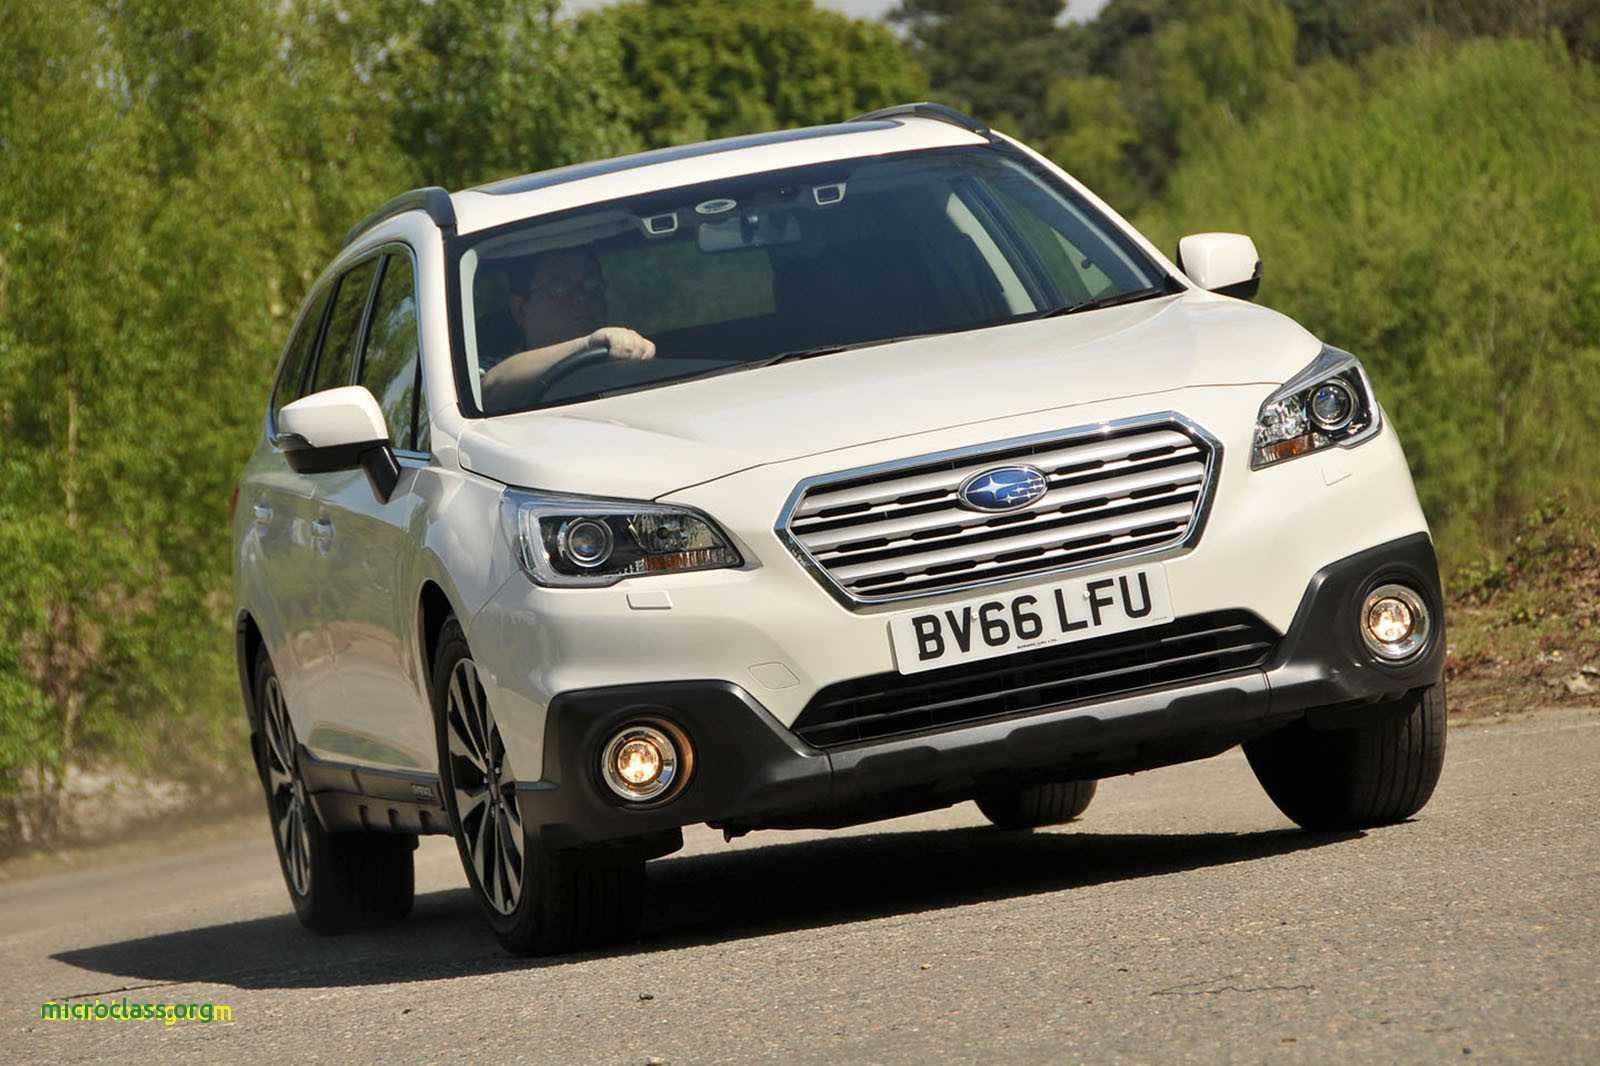 44 New 2019 Subaru Outback Turbo Hybrid Rumors